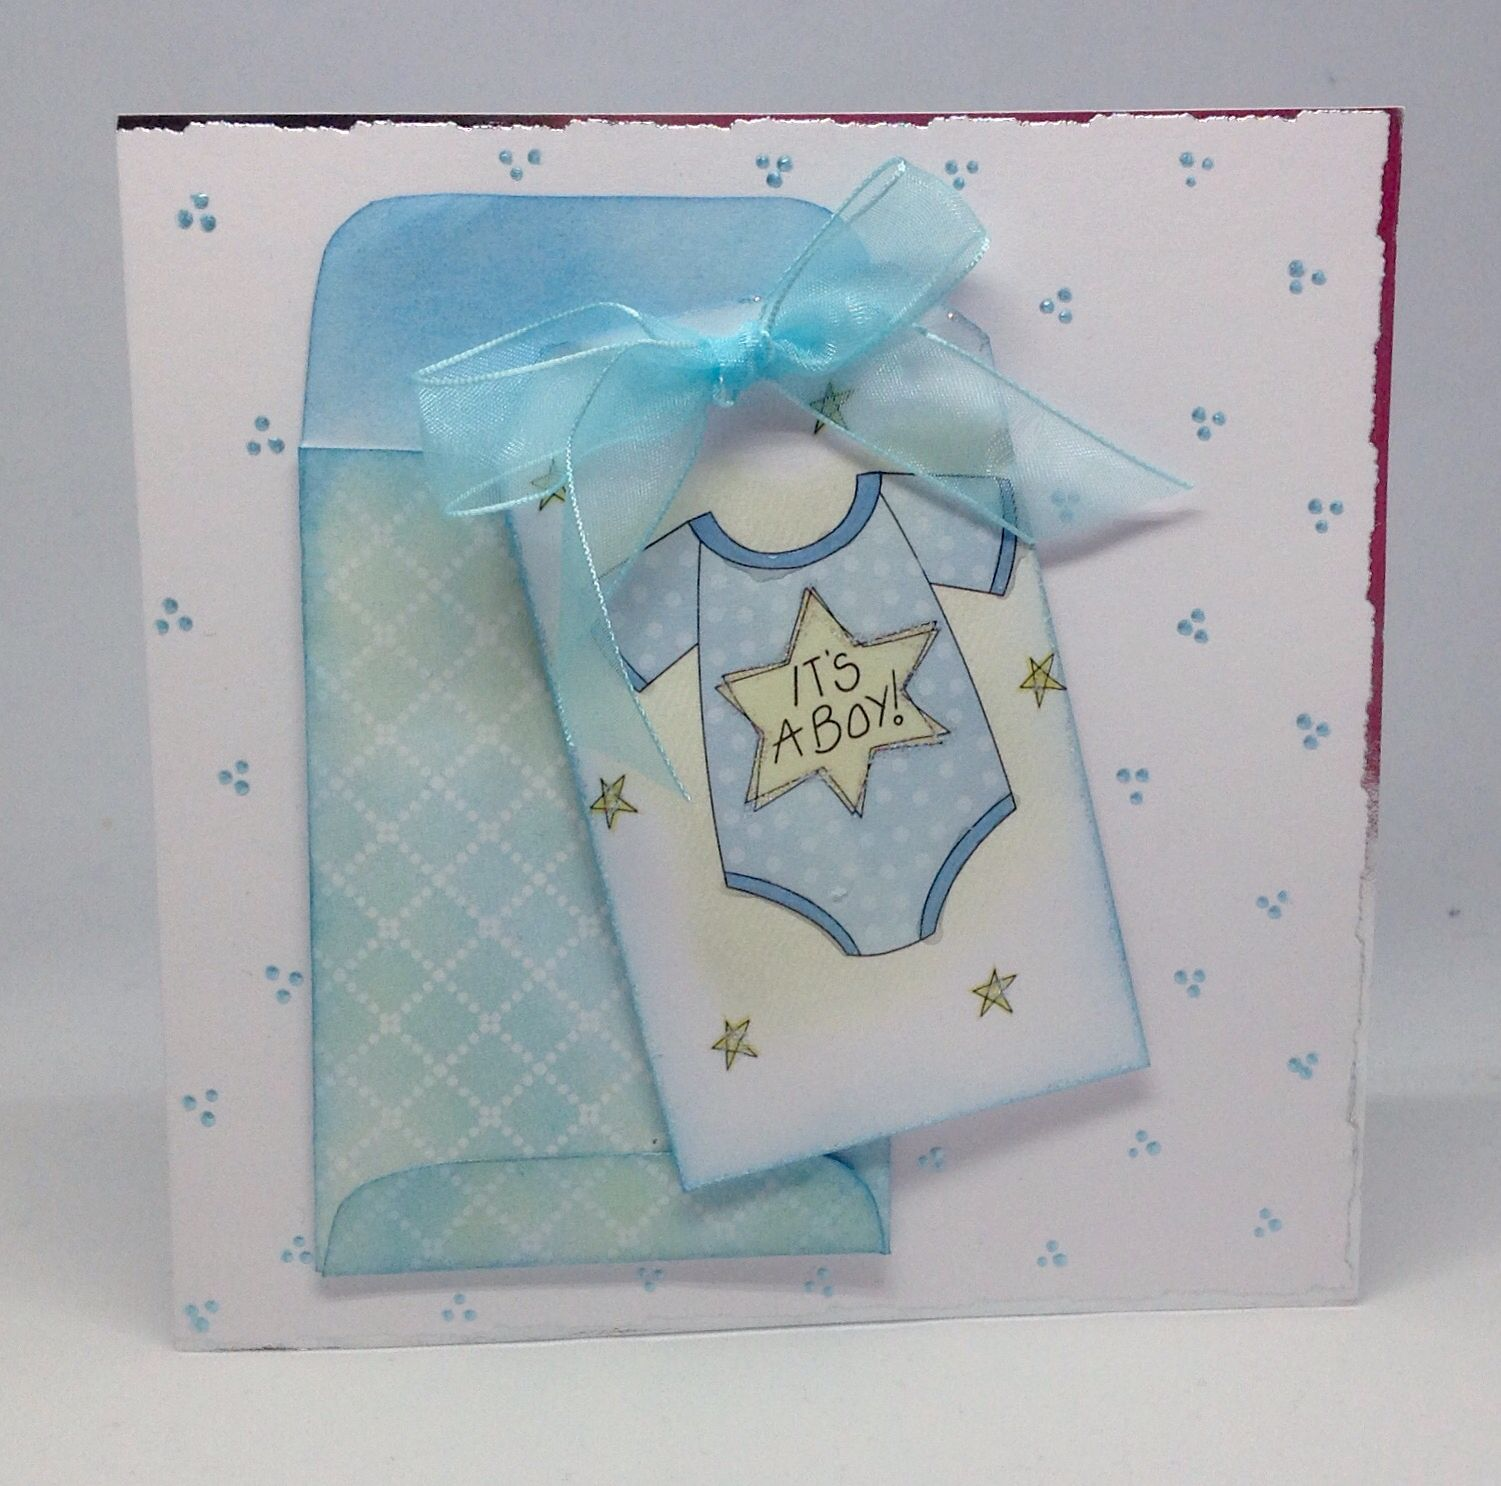 Created Using Sending Thoughts Kit Guilded Edge Card Blanks Mini